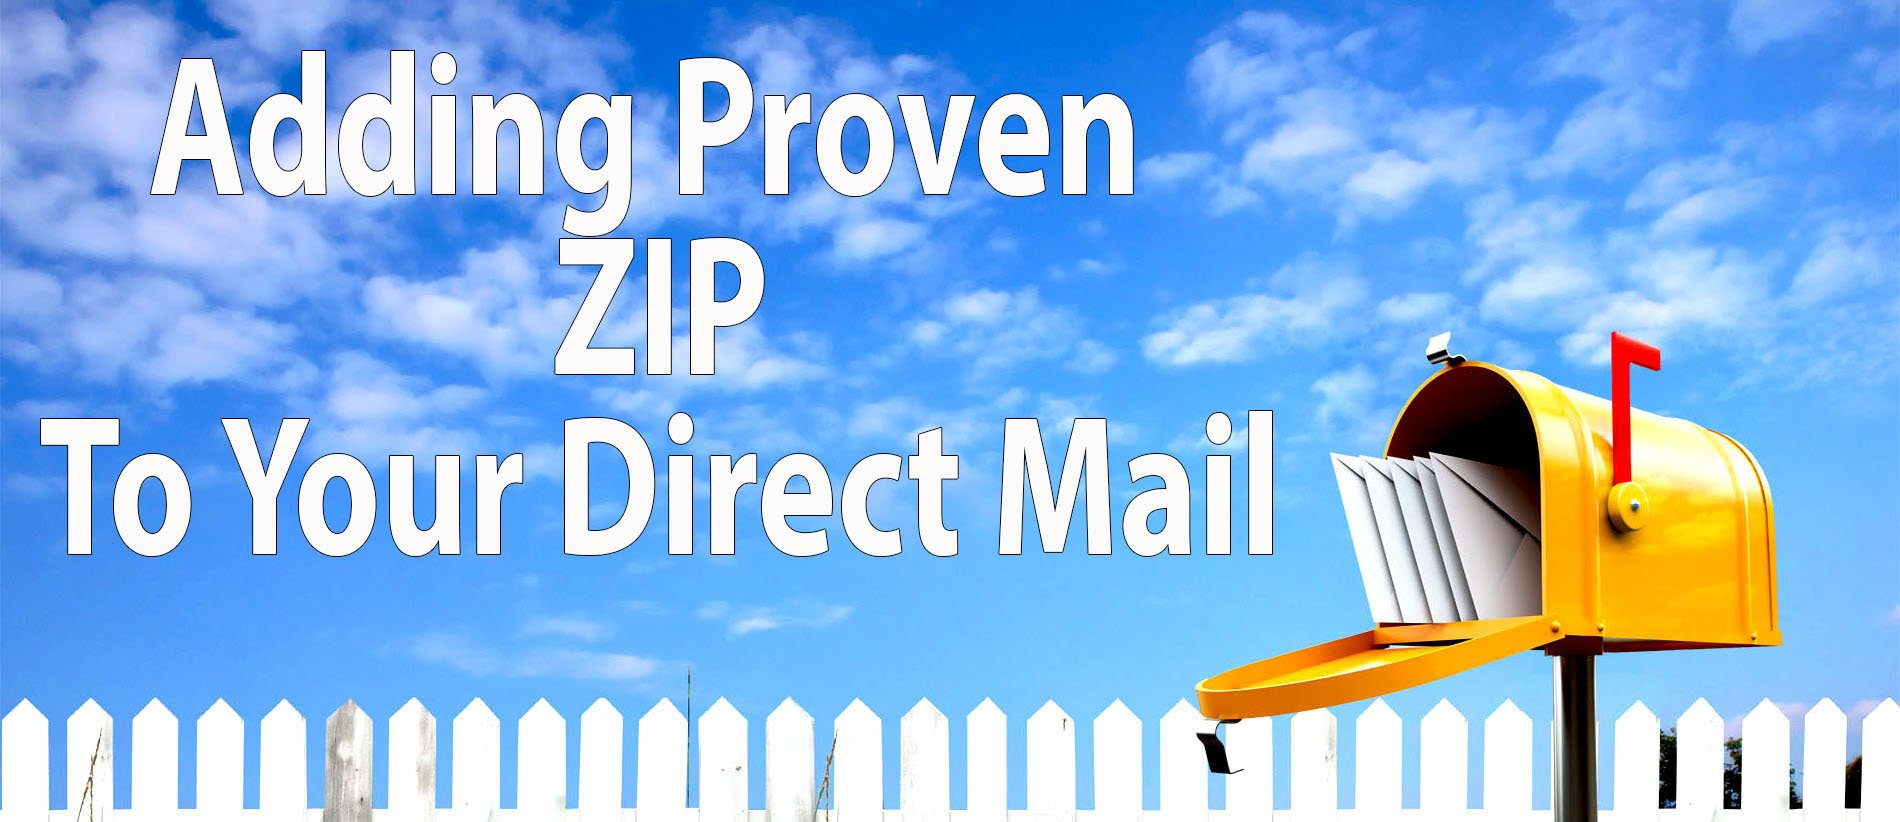 Add Proven ZIP To Your Direct Mail